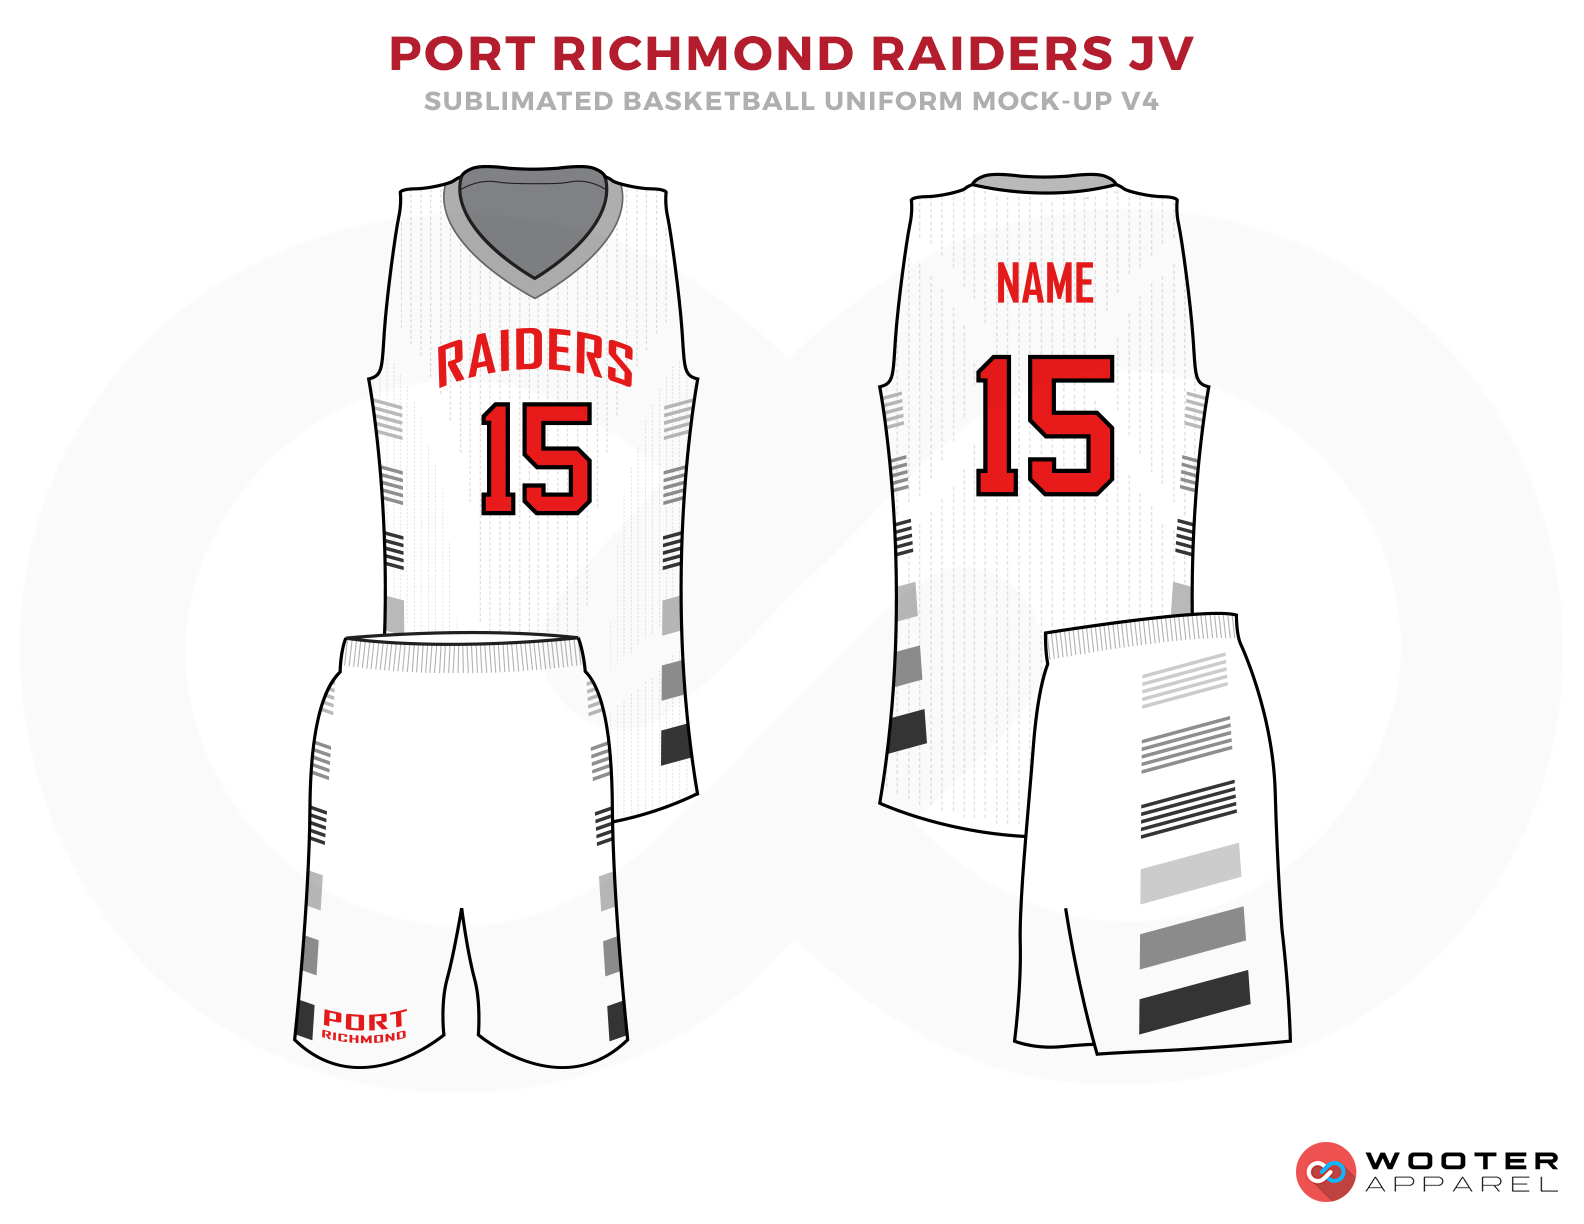 PORT RICHMOND RIDERS JV White Grey and Red Basketball Uniforms, Jersey and Shorts